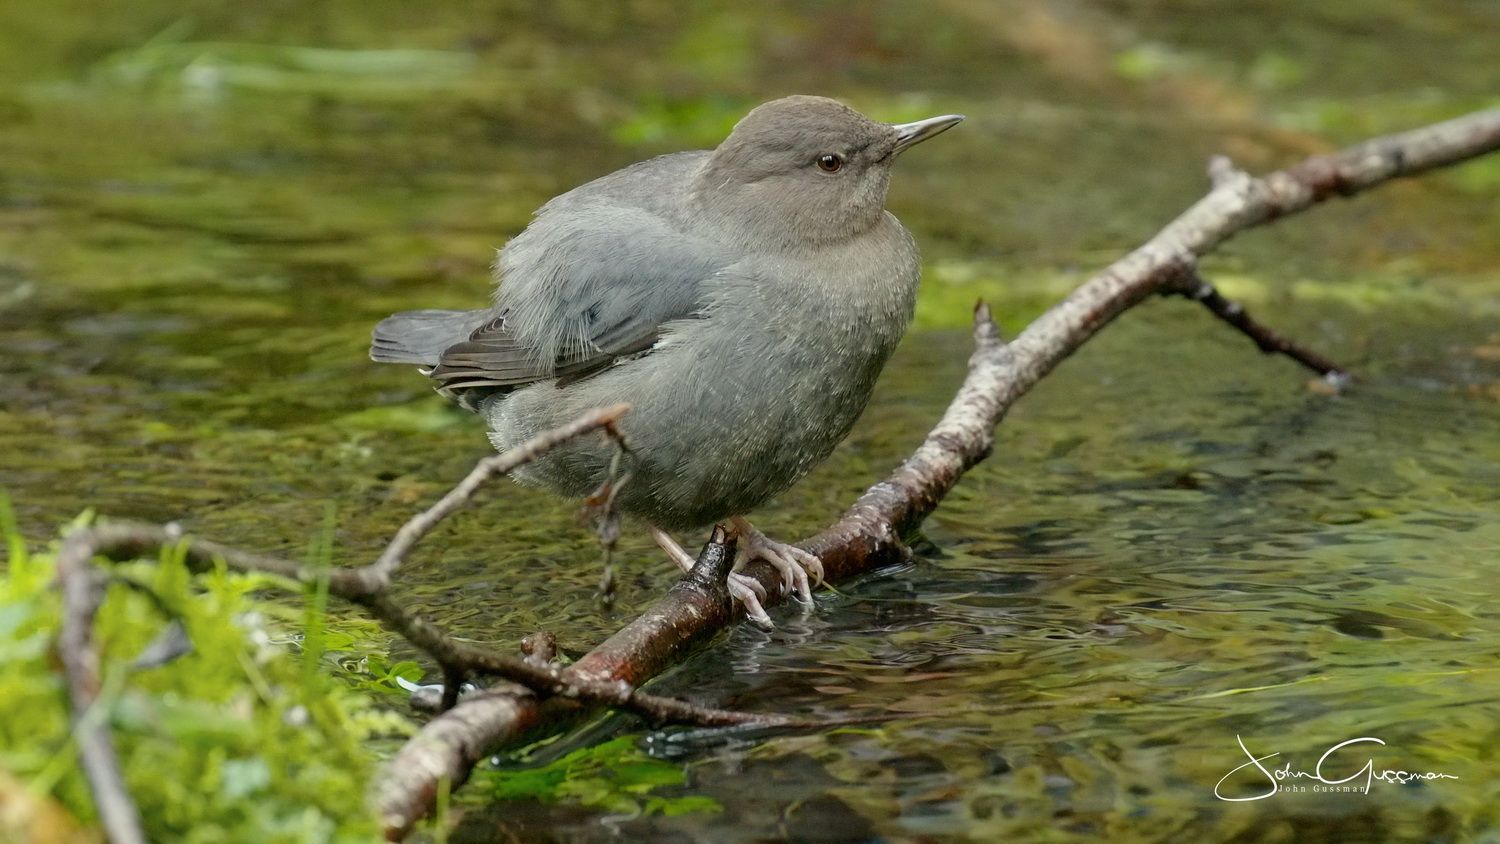 an American dipper (small, round gray bird) sits on a branch in moving water